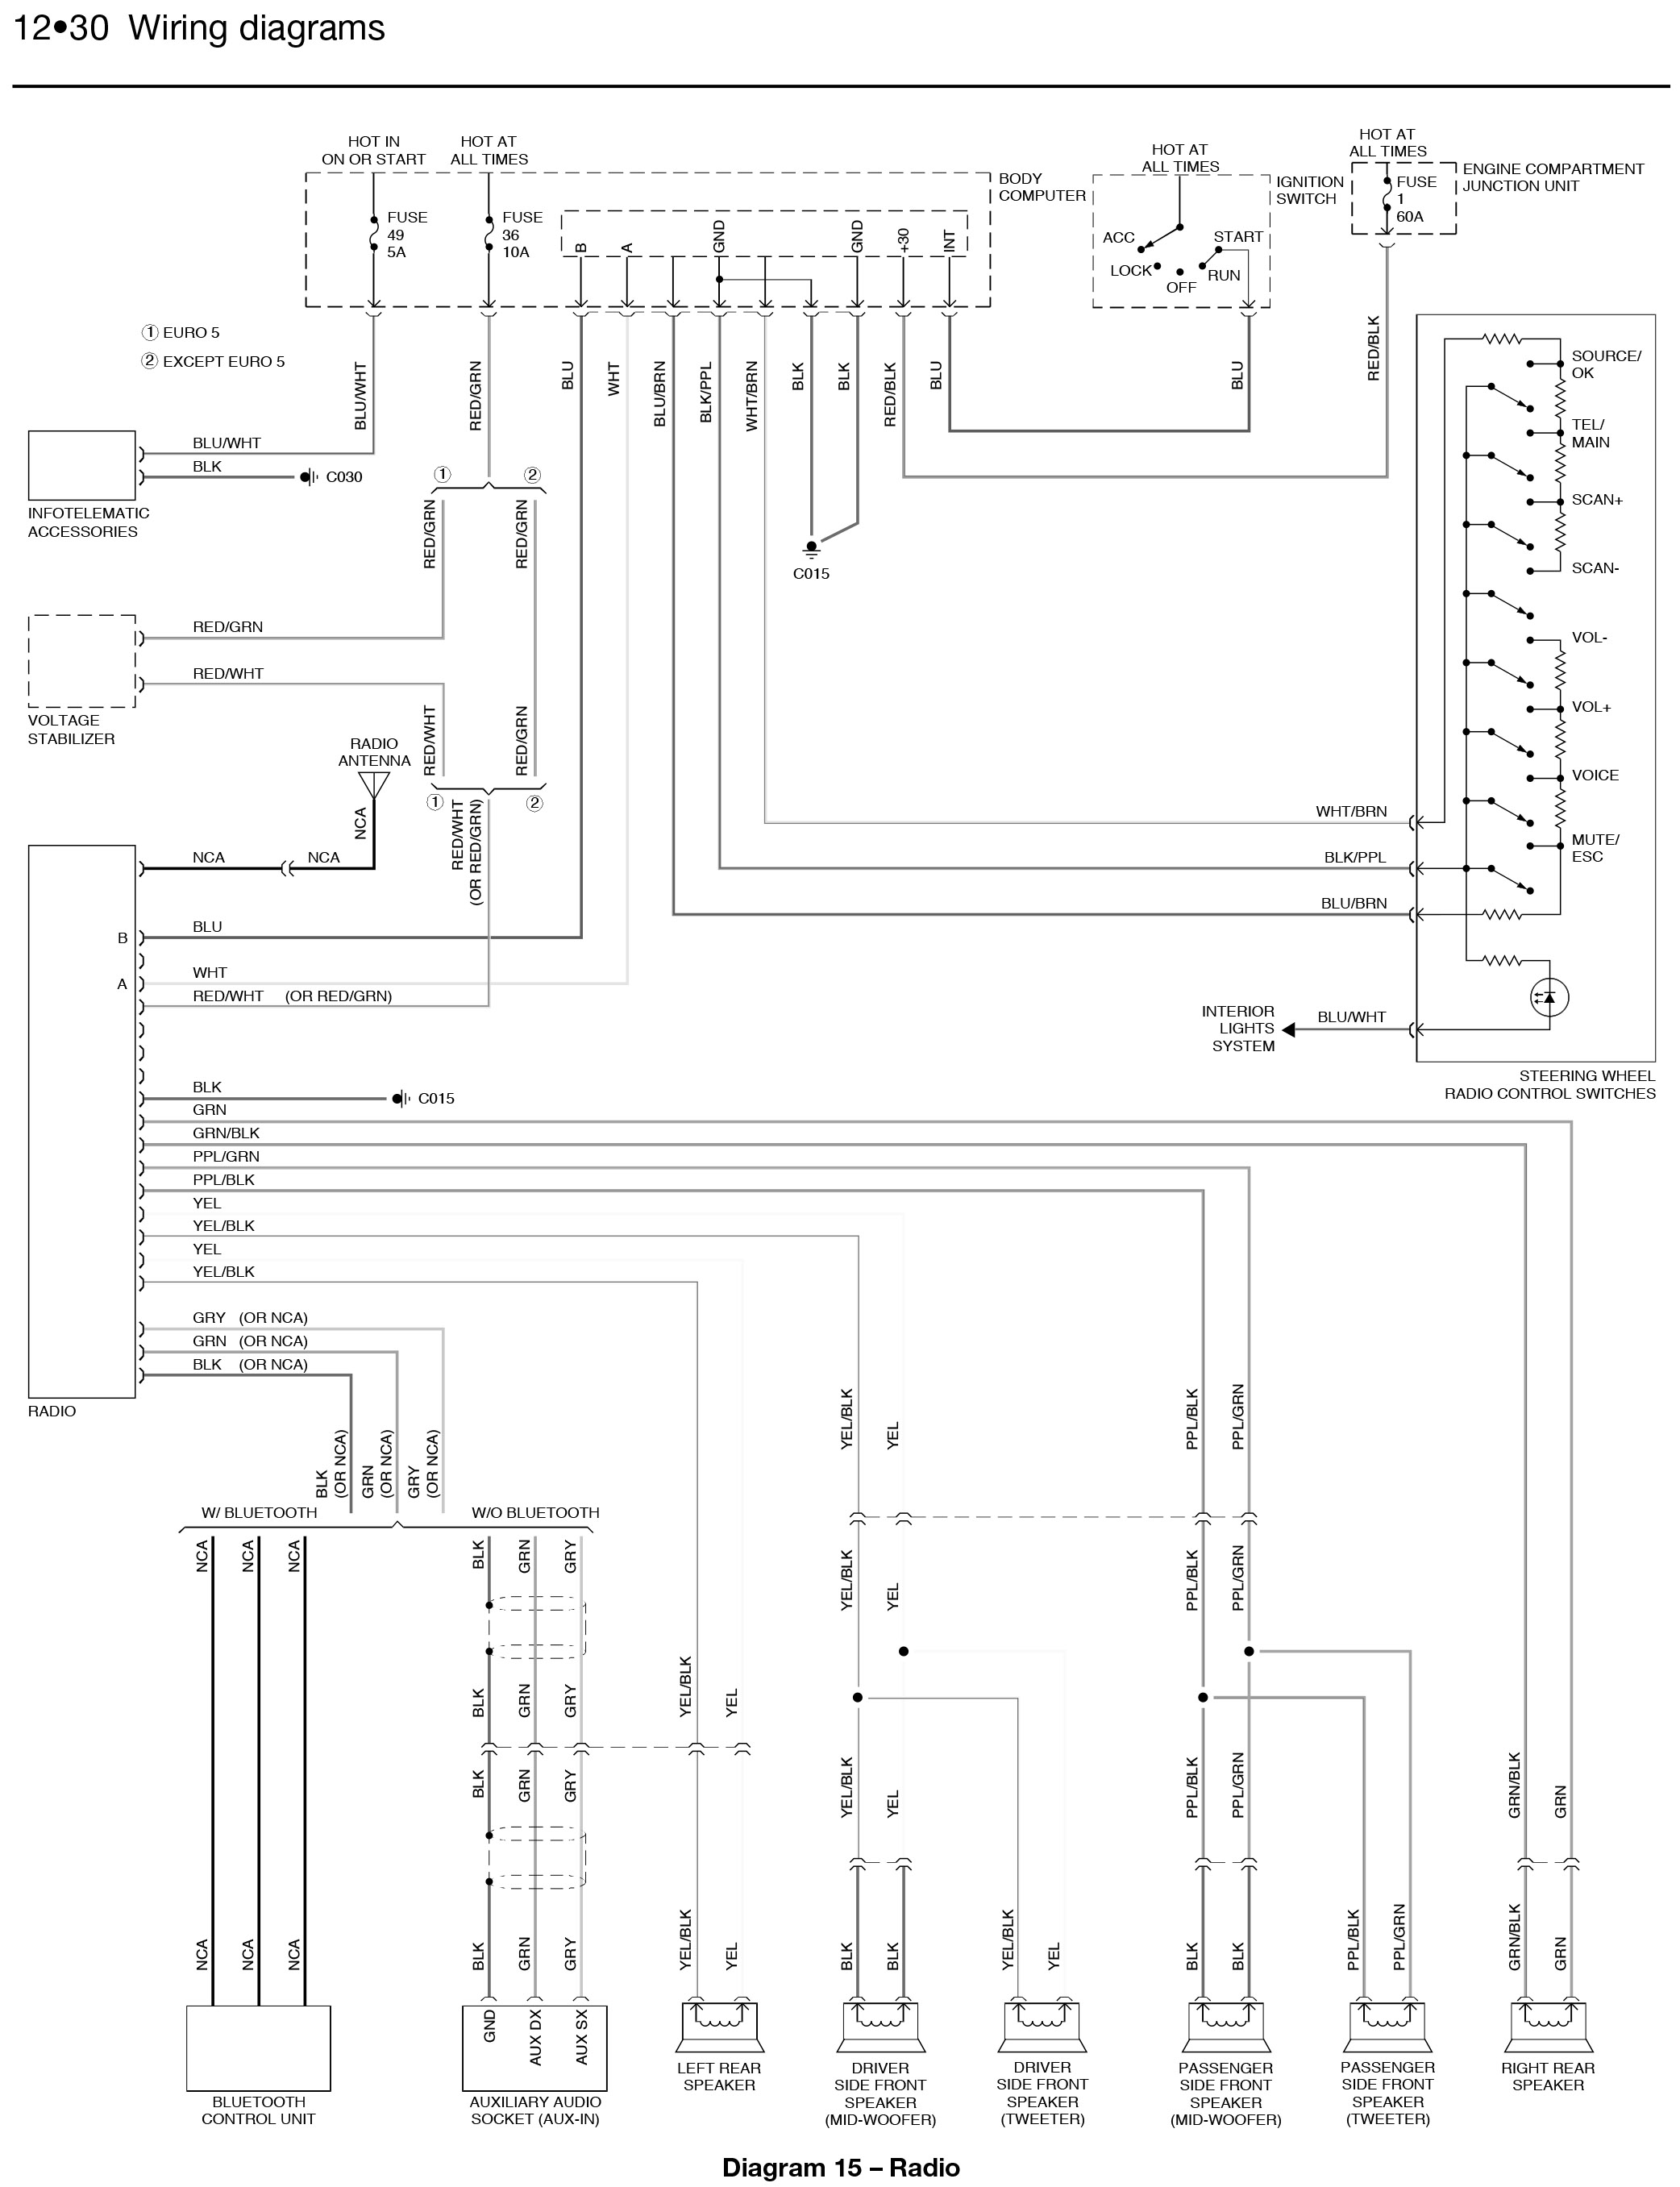 Ford Ka Wiring Diagram New Holland Wiring Diagrams • Bakdesigns.co